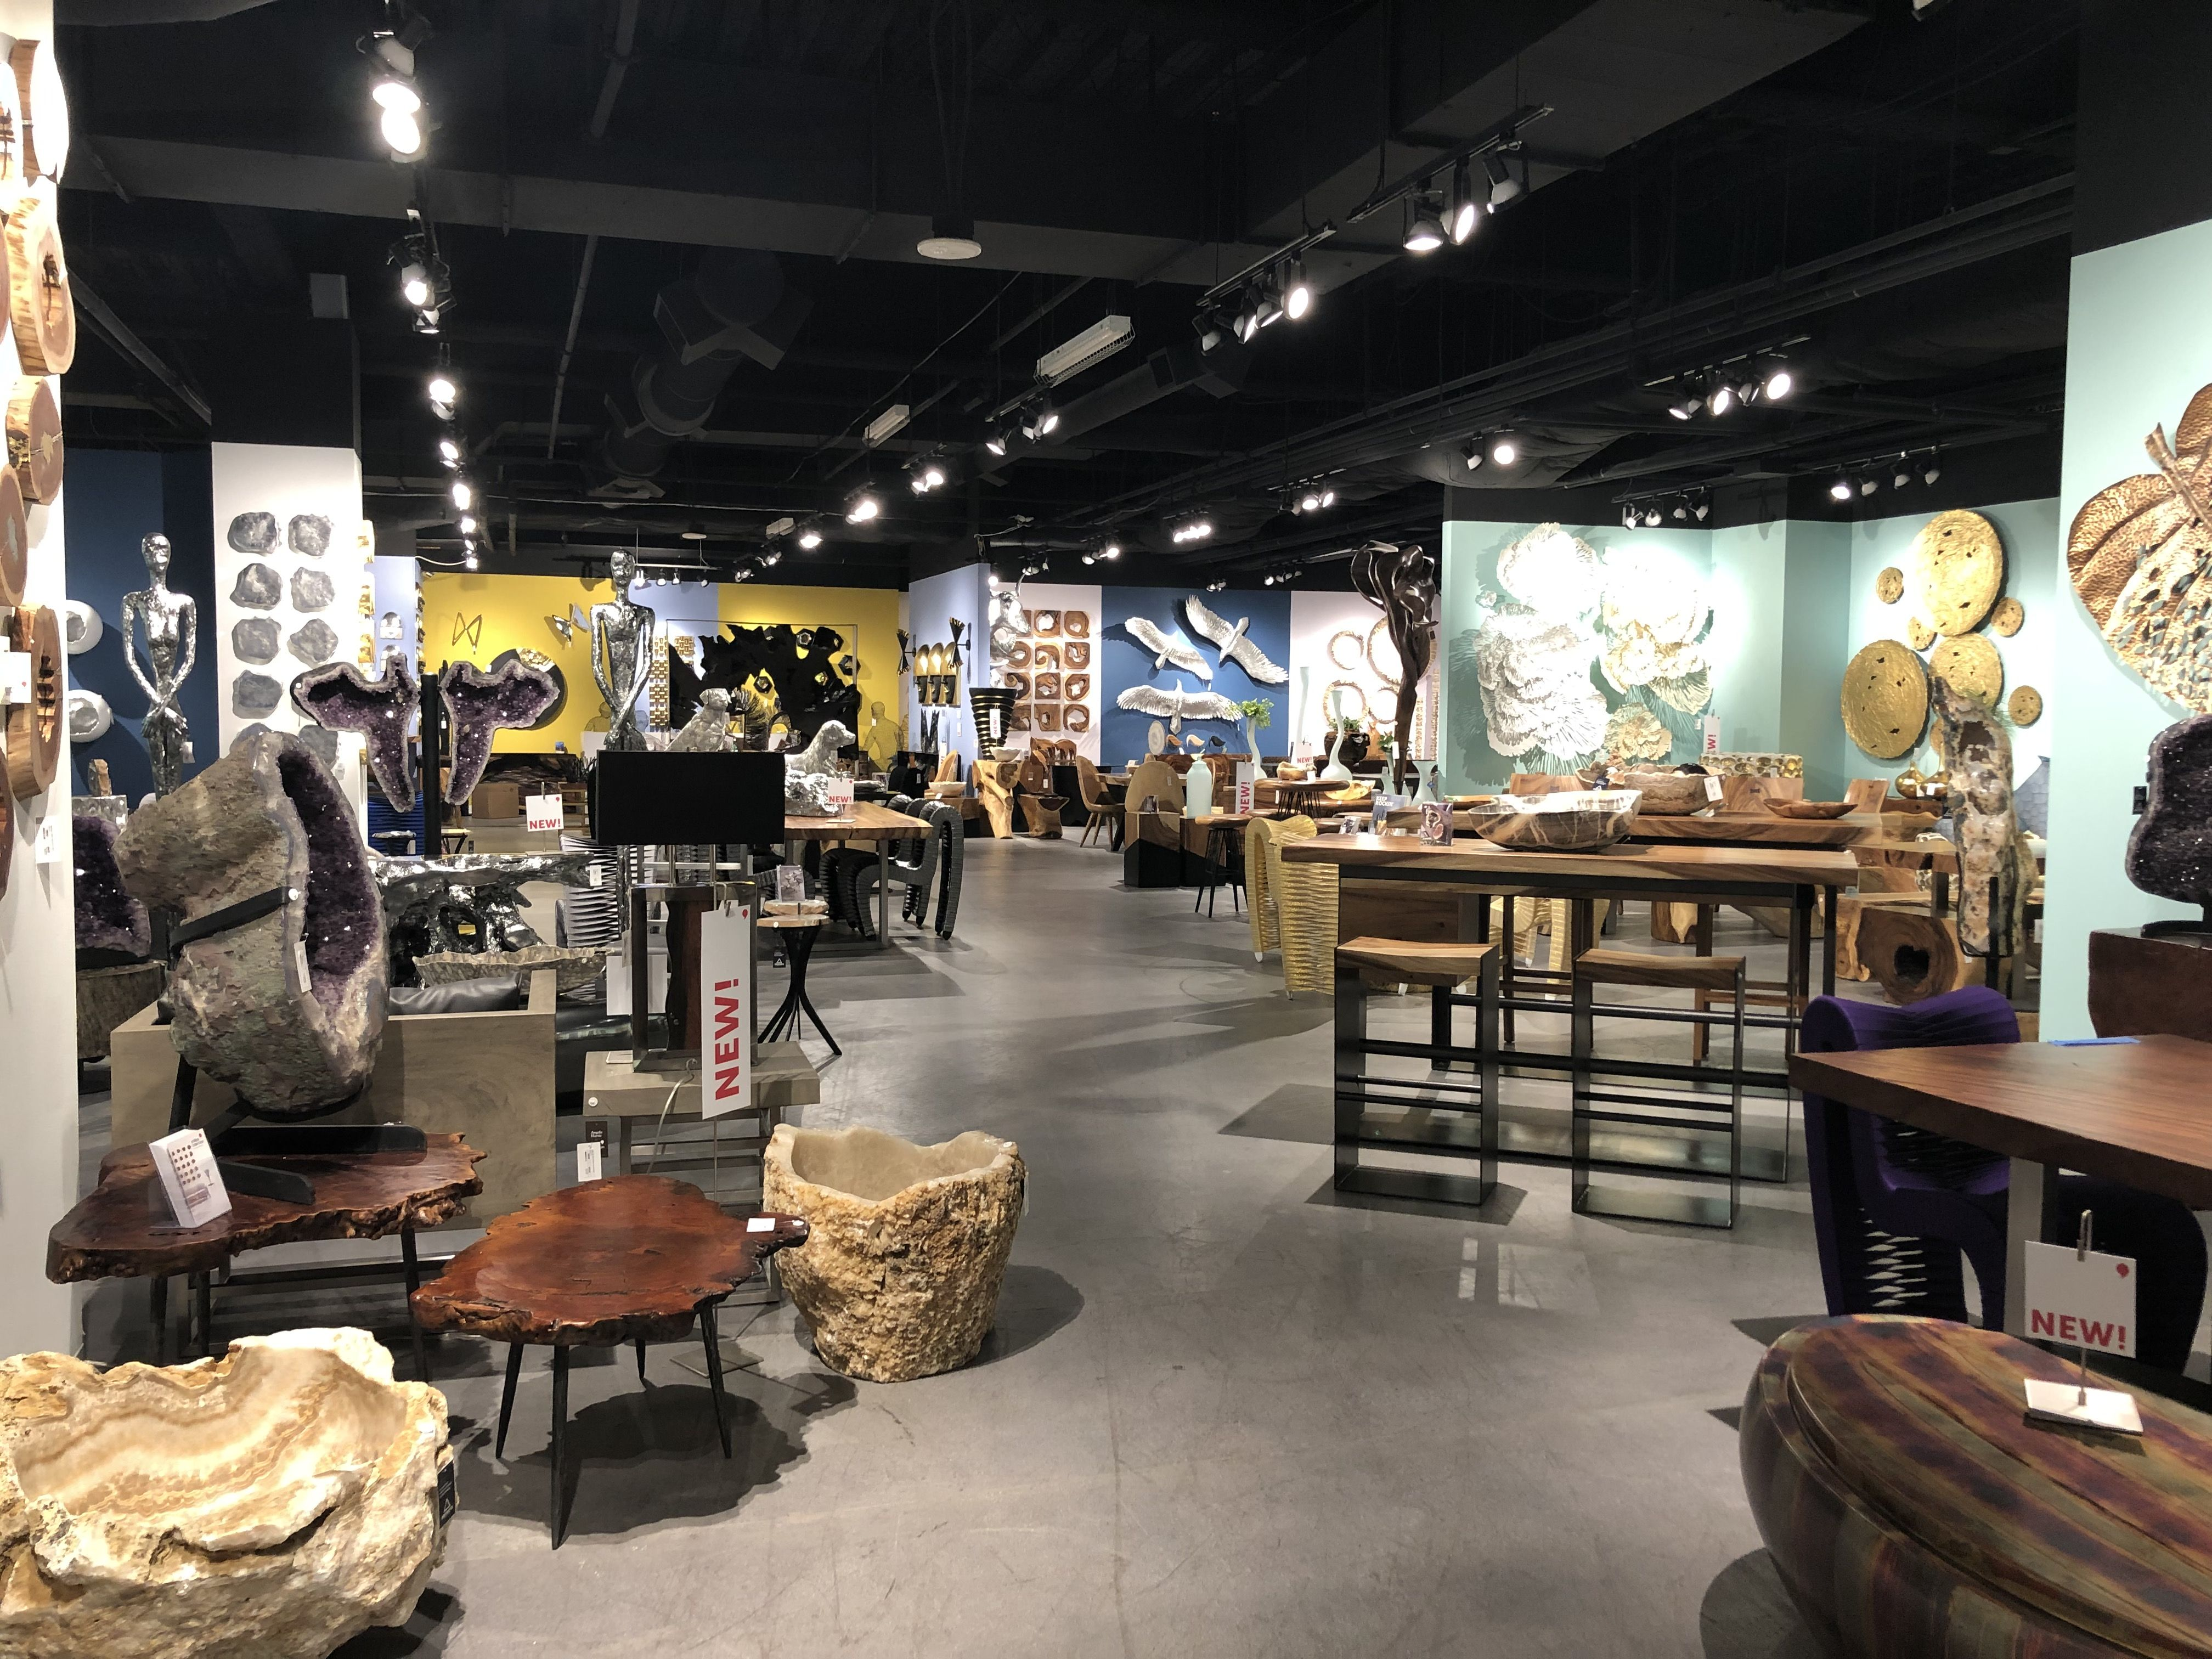 Our Showroom At Americasmart 240 Peachtree Street Nw Suite 15 A 6 15th Floor Atlanta Ga 30303 Showroom Galle Fine Furniture Furniture Phillips Collection